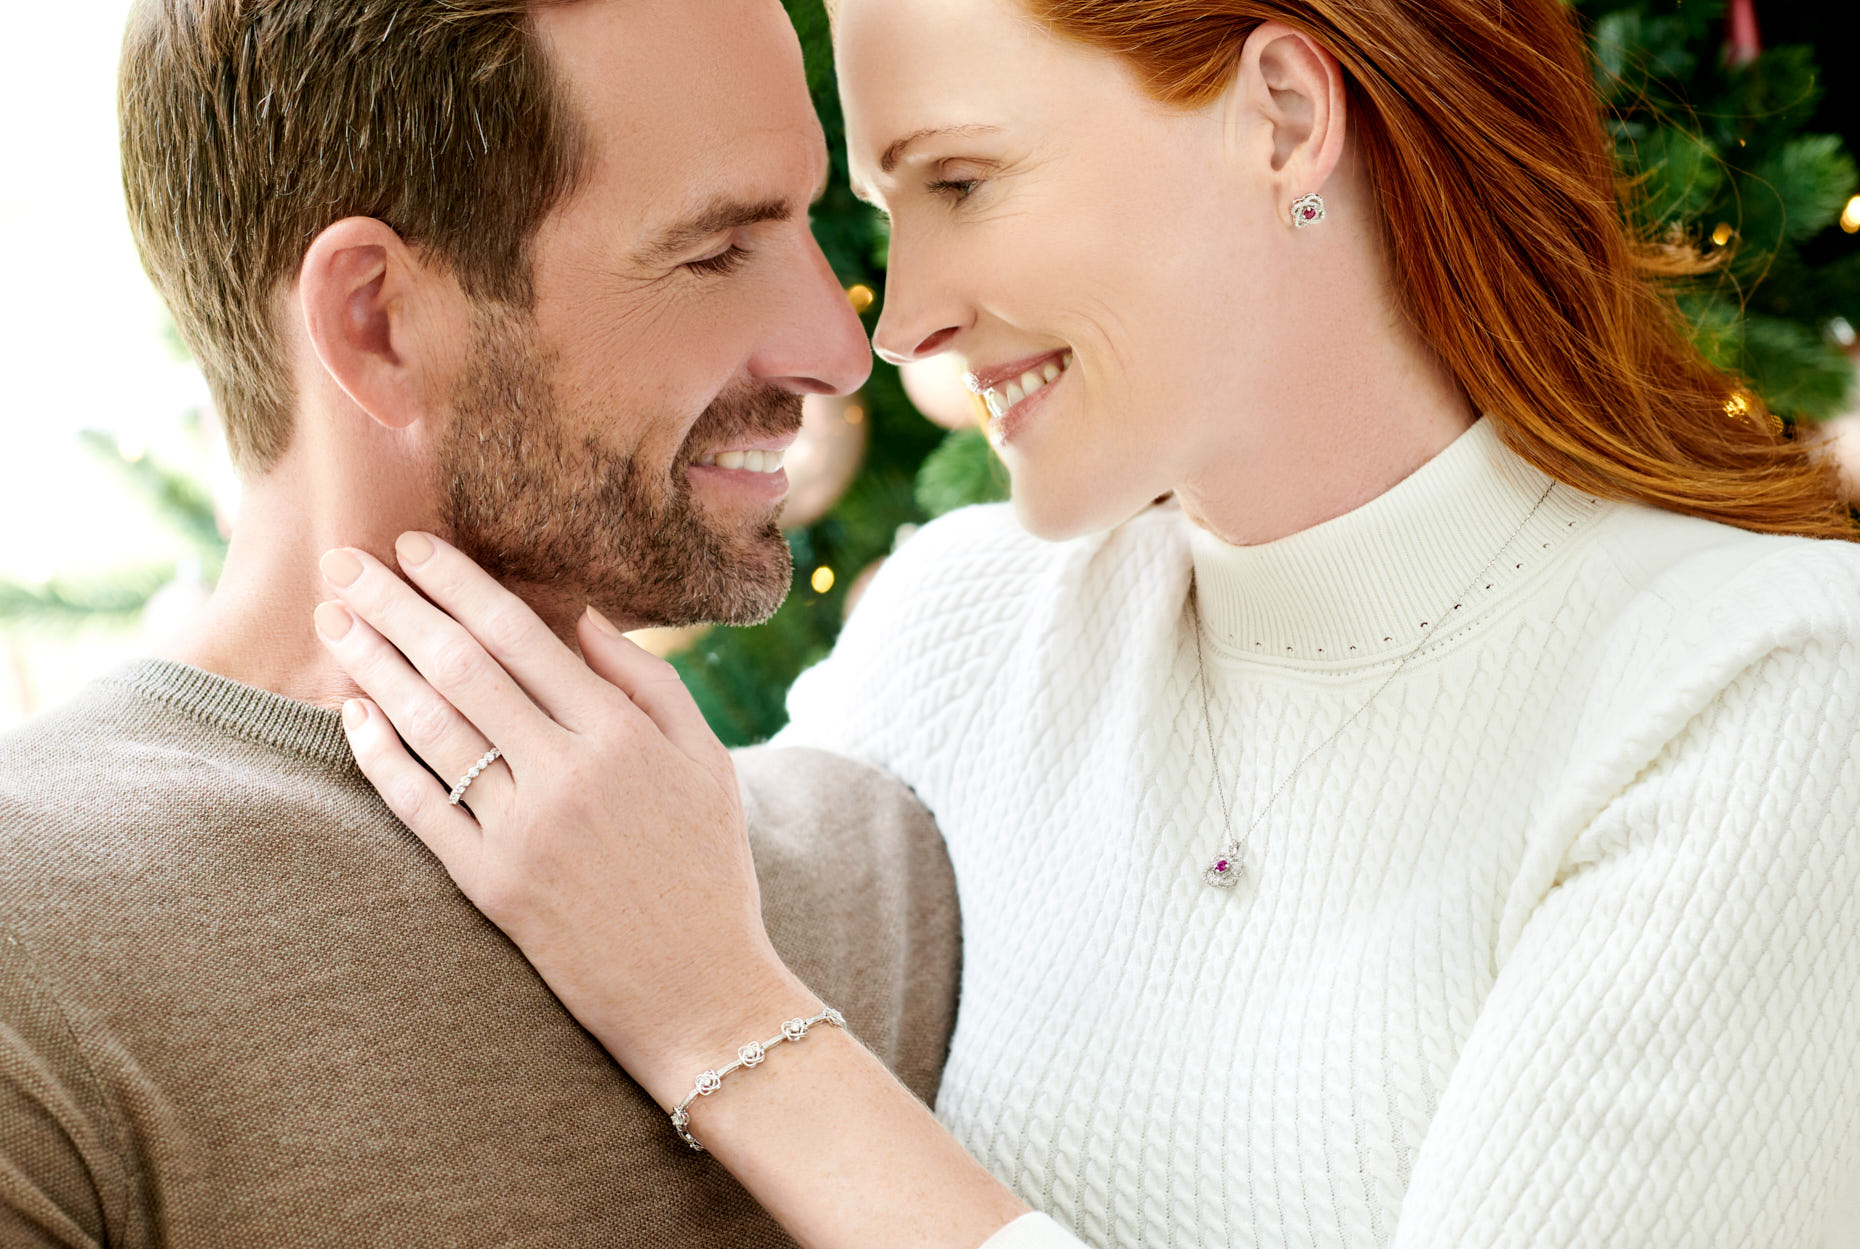 Jeff Stephens | Engagement and Wedding Jewelry